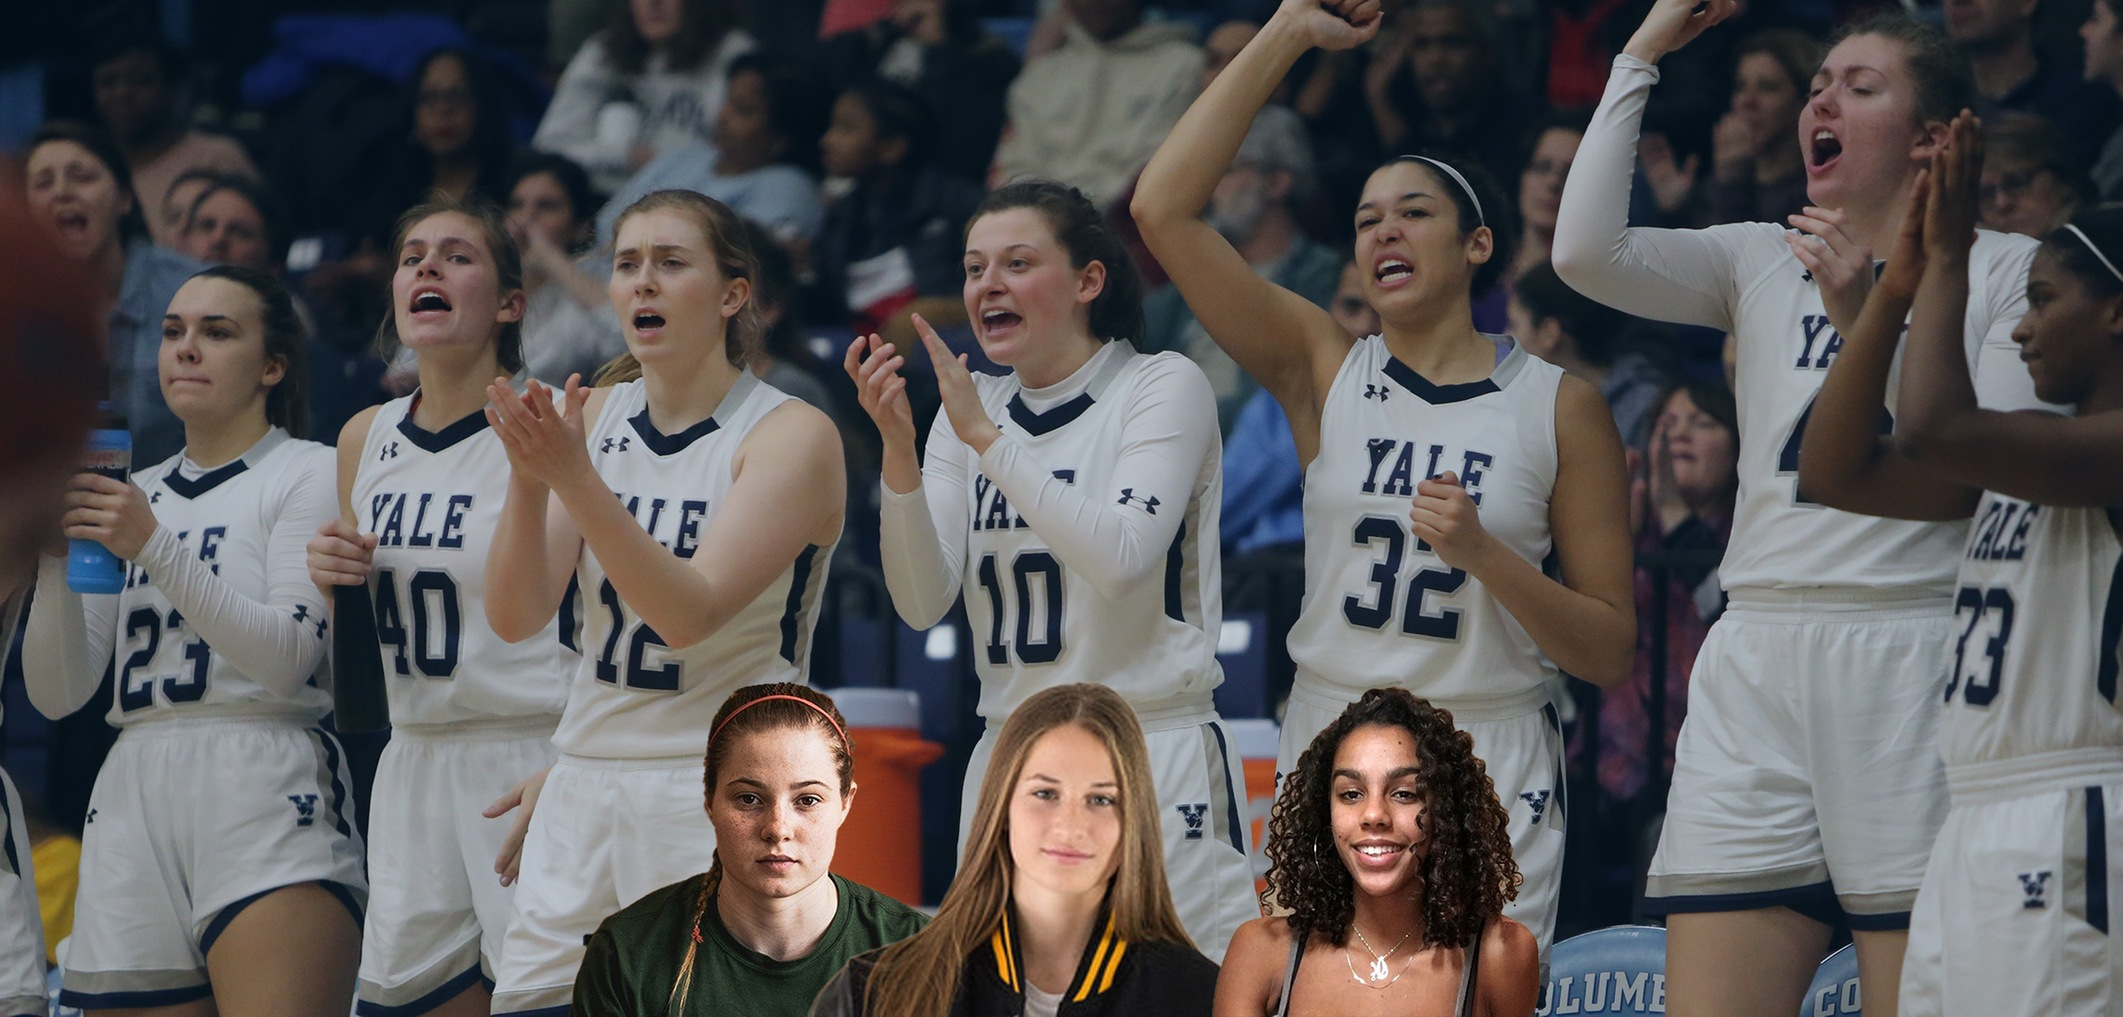 The Yale Women's Basketball Class of 2023: Klara Astrom, Jenna Clark and Ayla Elam.